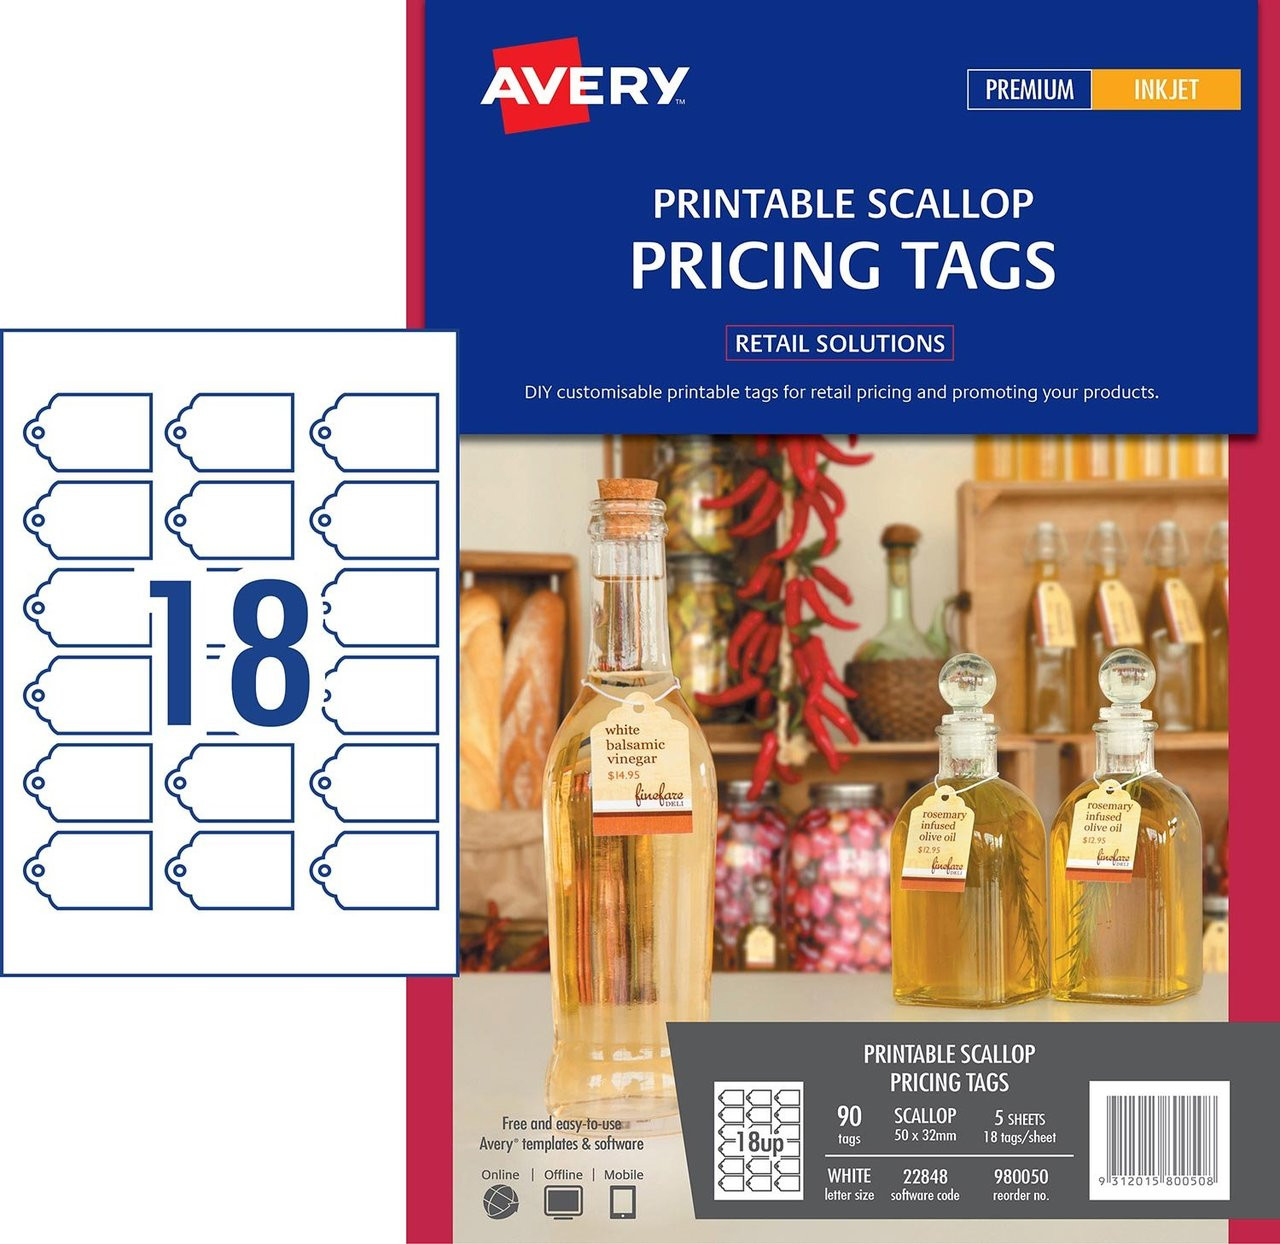 graphic about Avery Printable Tags identified as AVERY 980050 PRINTABLE SCALLOP PRICING TAGS, 22848, 90/PACK, 50 X 32MM 18UP